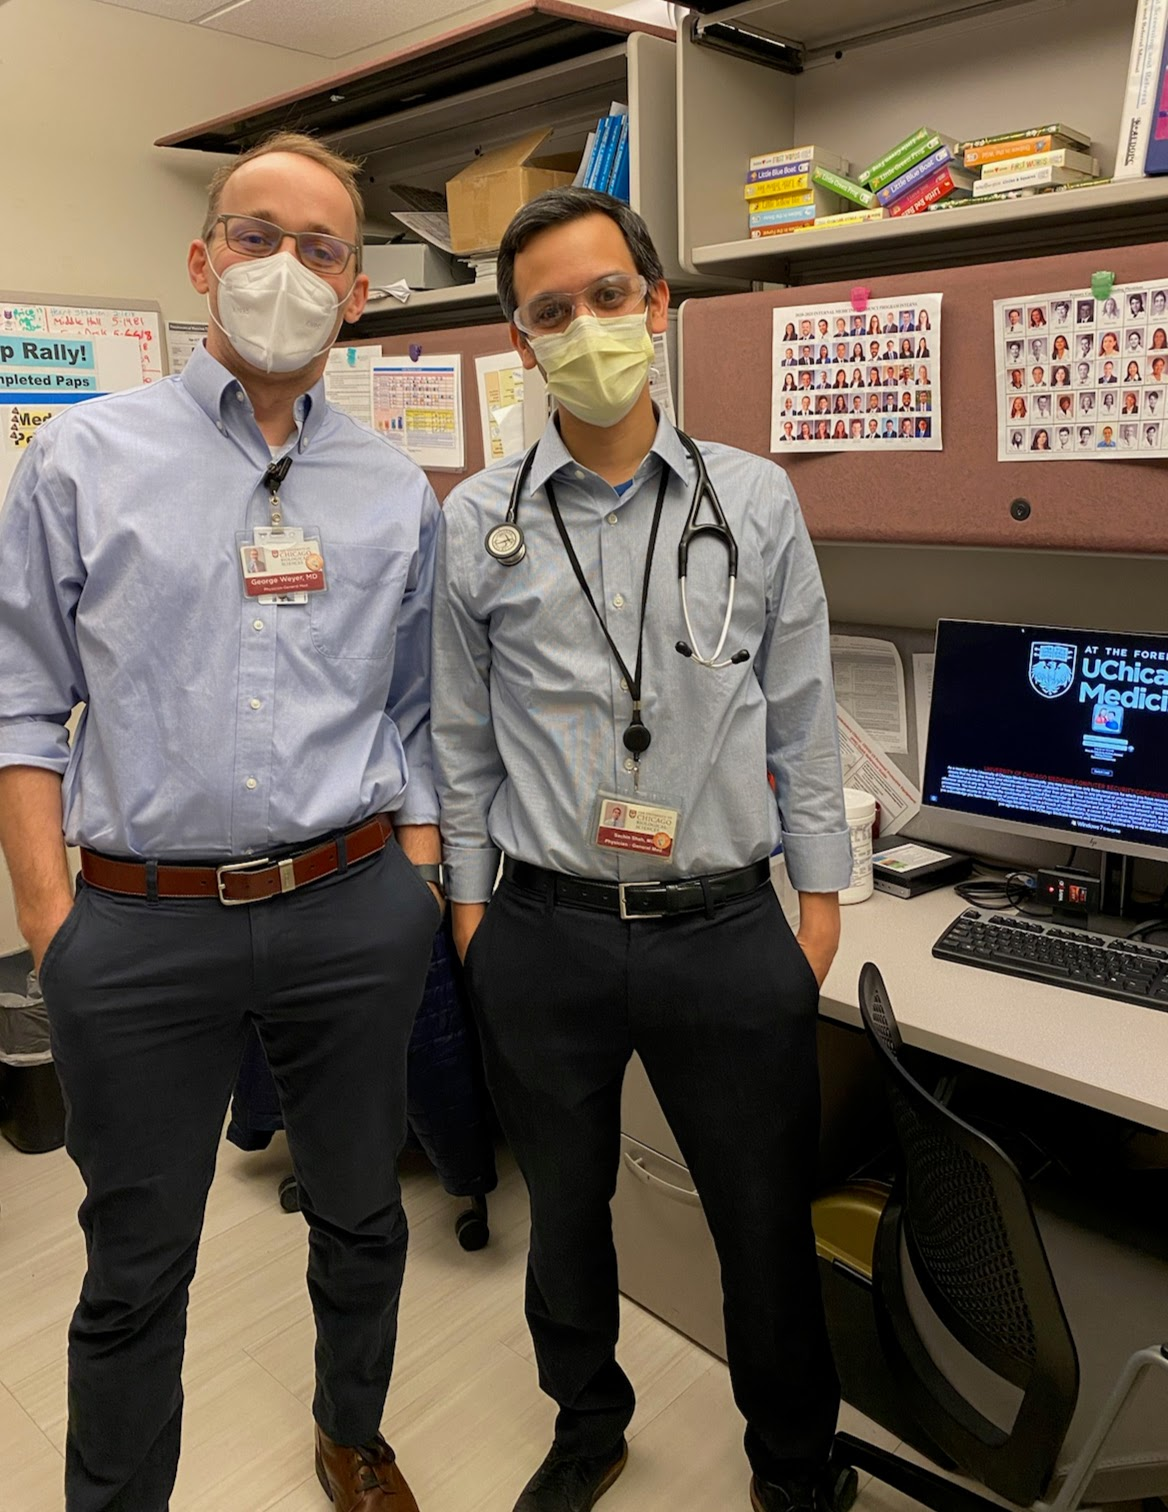 Sachin standing with his co-worker in an office, both wearing masks and glasses. A stethoscope casually wrapped around Sachin's neck.